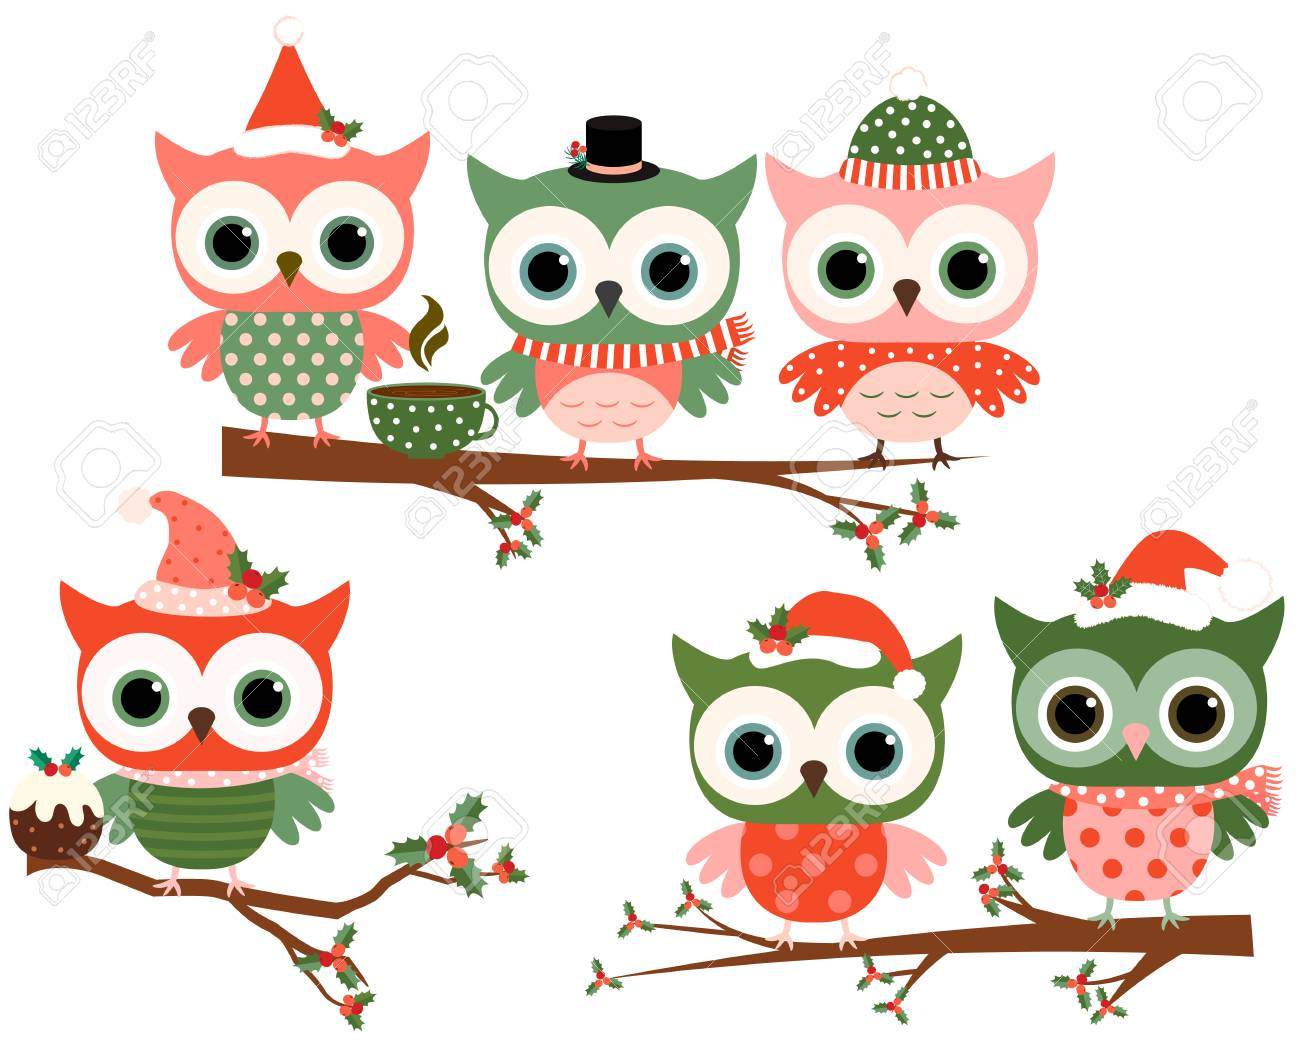 Cute christmas owl characters on tree branches in green and red cute christmas owl characters on tree branches in green and red colors for greeting cards and m4hsunfo